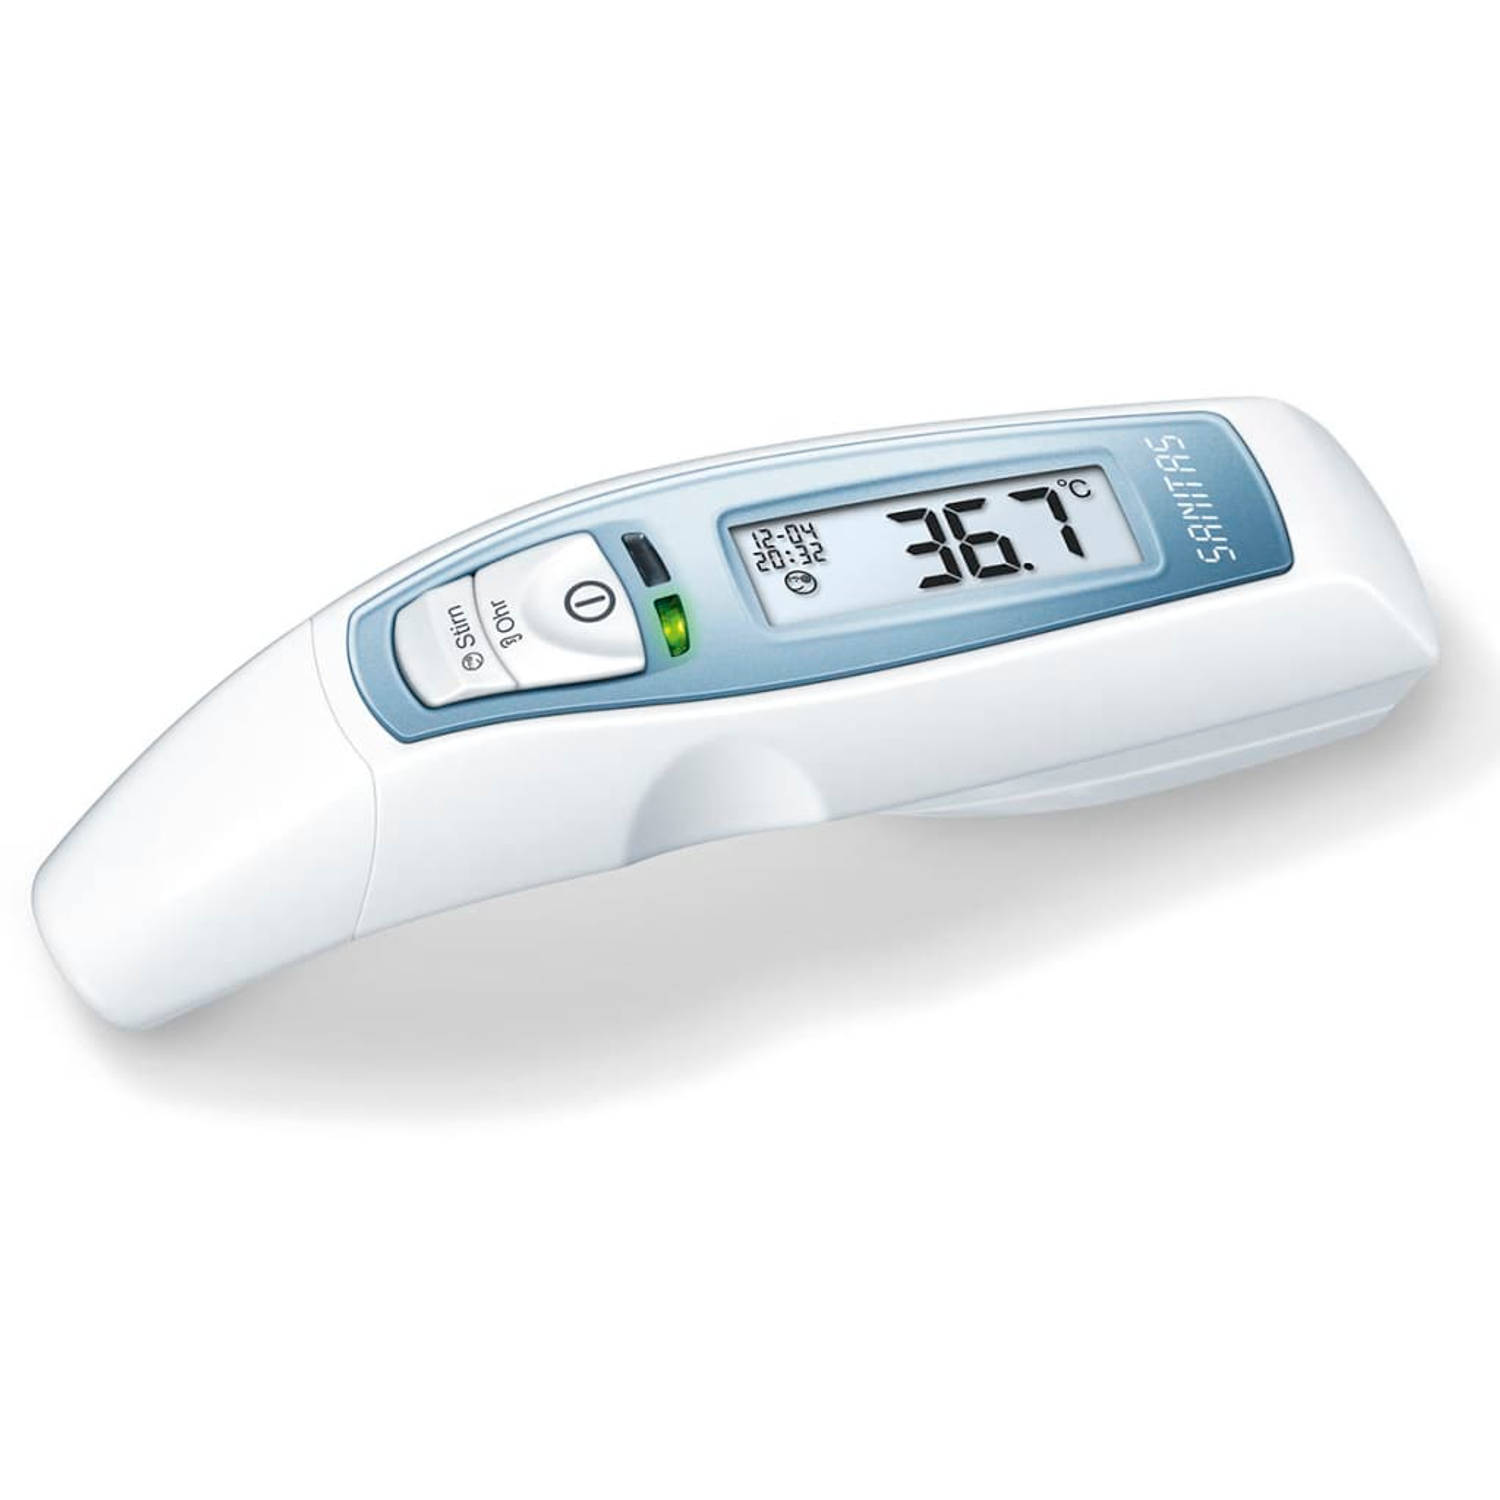 Sanitas Multifunctionele thermometer 6-in-1 wit SFT 65